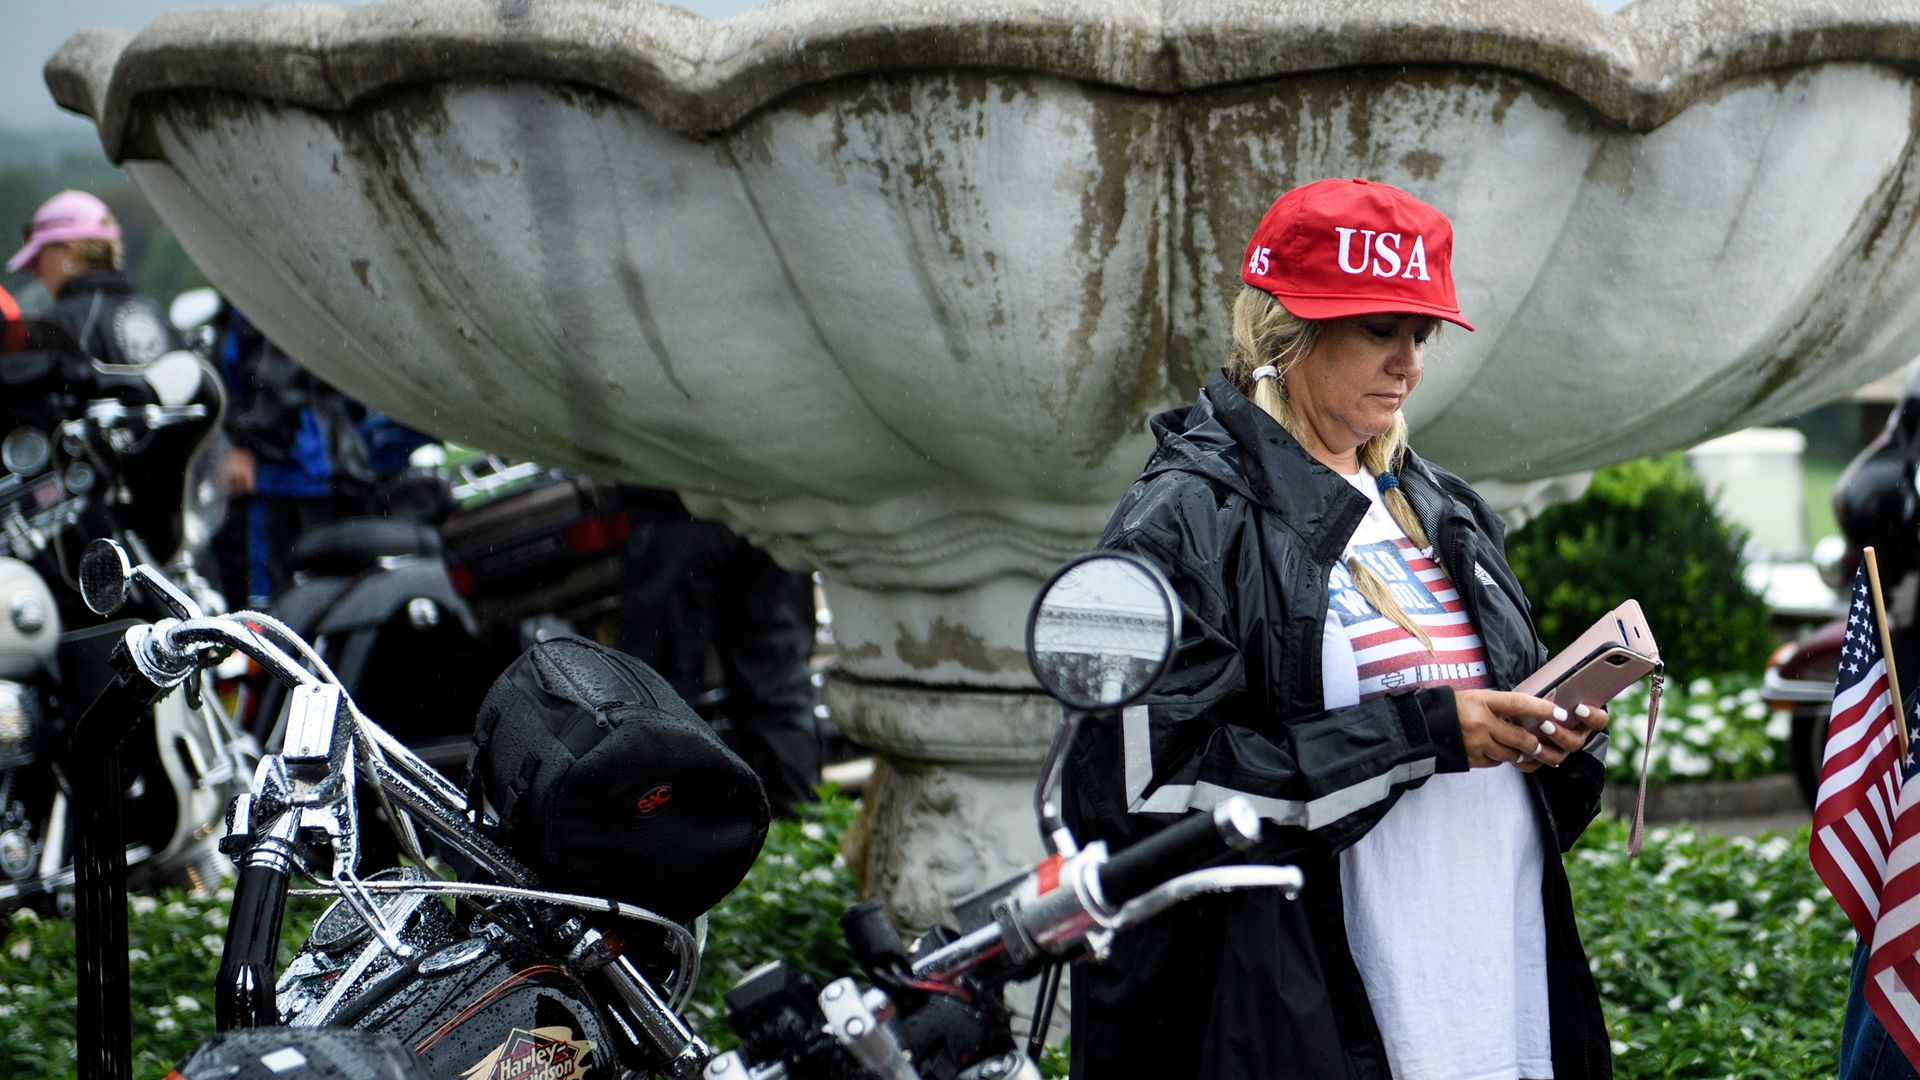 A woman wearing a USA hat looks at her phone.